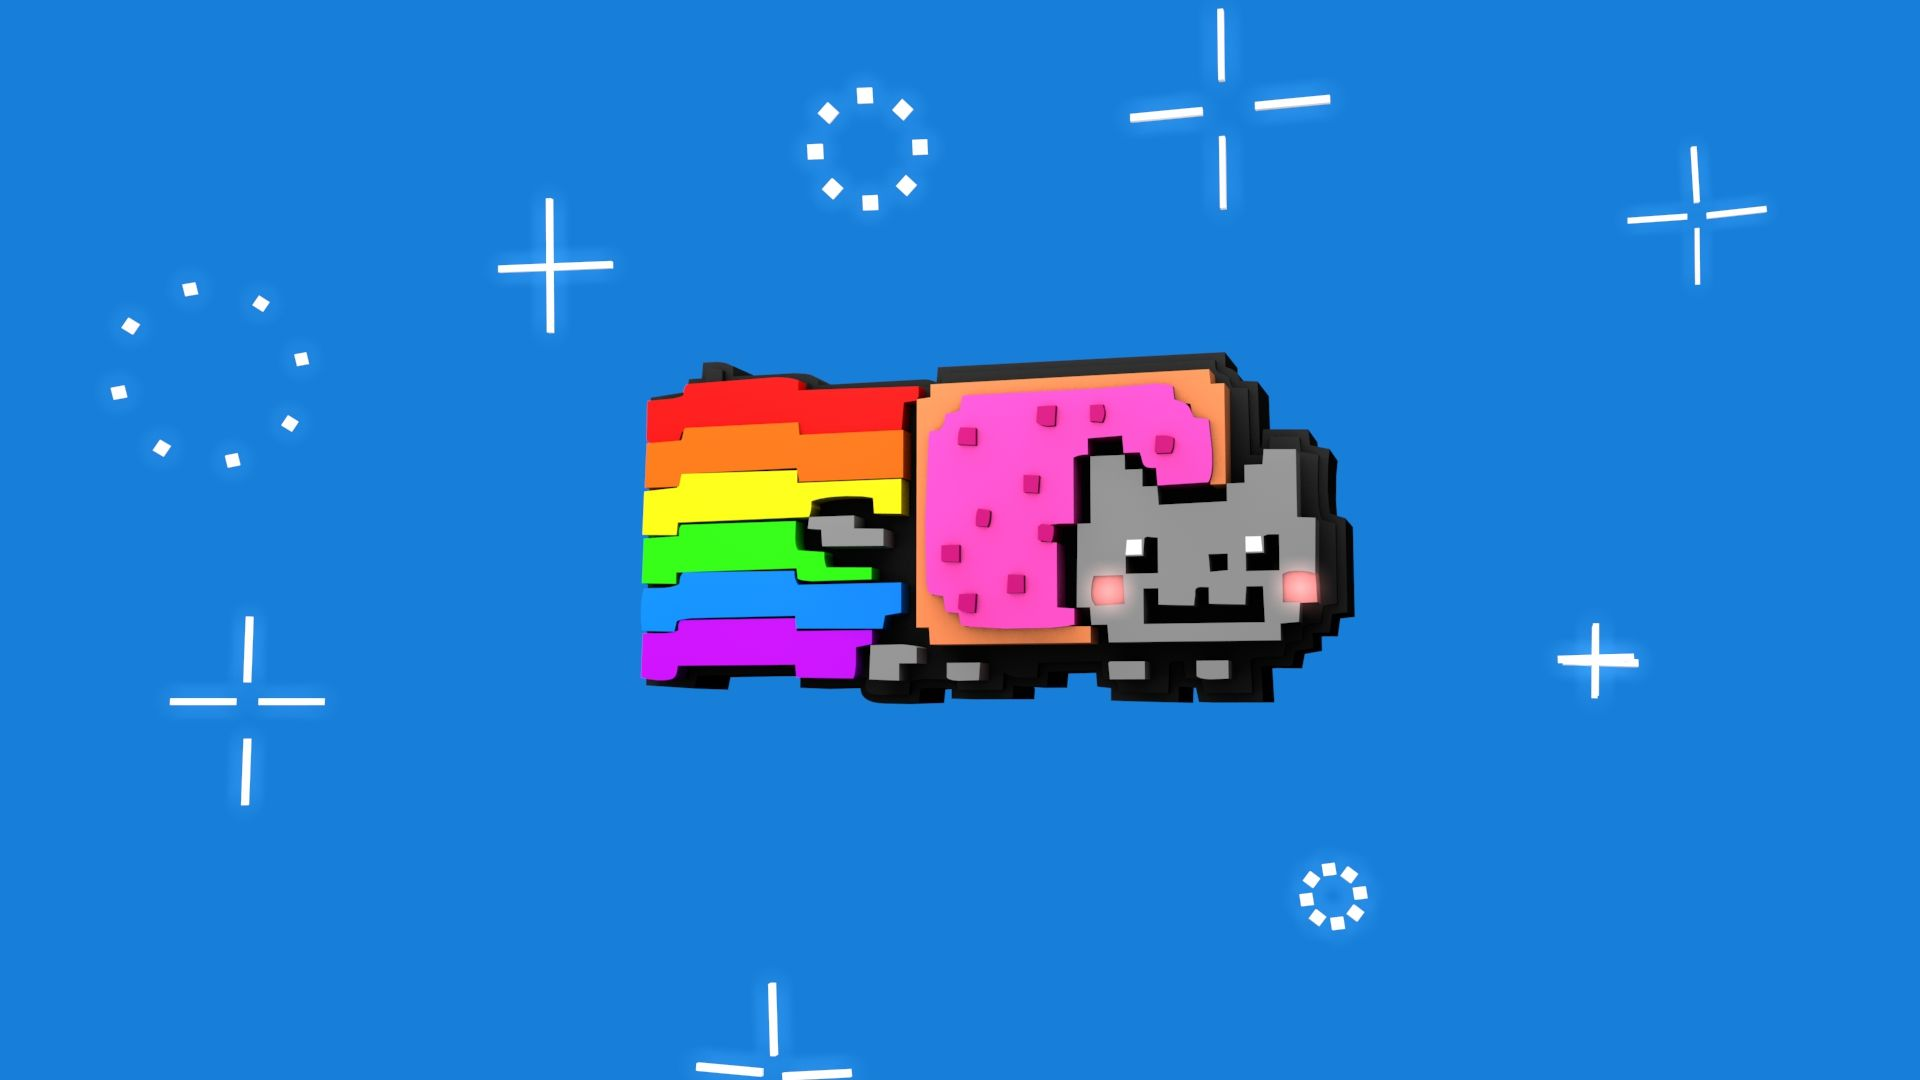 Nyan Cat Nyan Cat Google Skins Nyan Cat Google Backgrounds Nyan